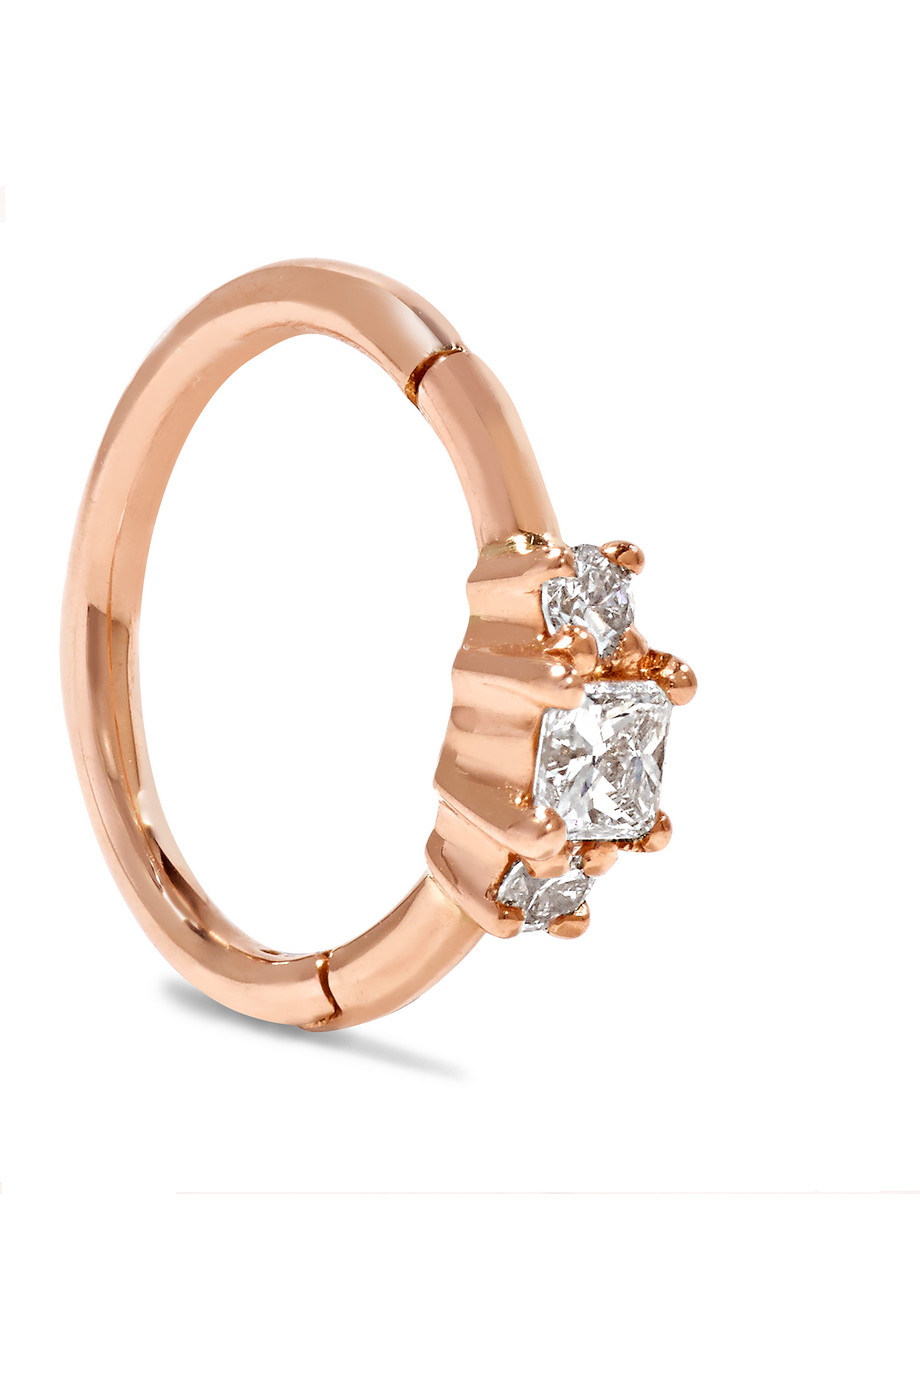 18-Karat Gold Diamond Earring, Rose Gold, Women's